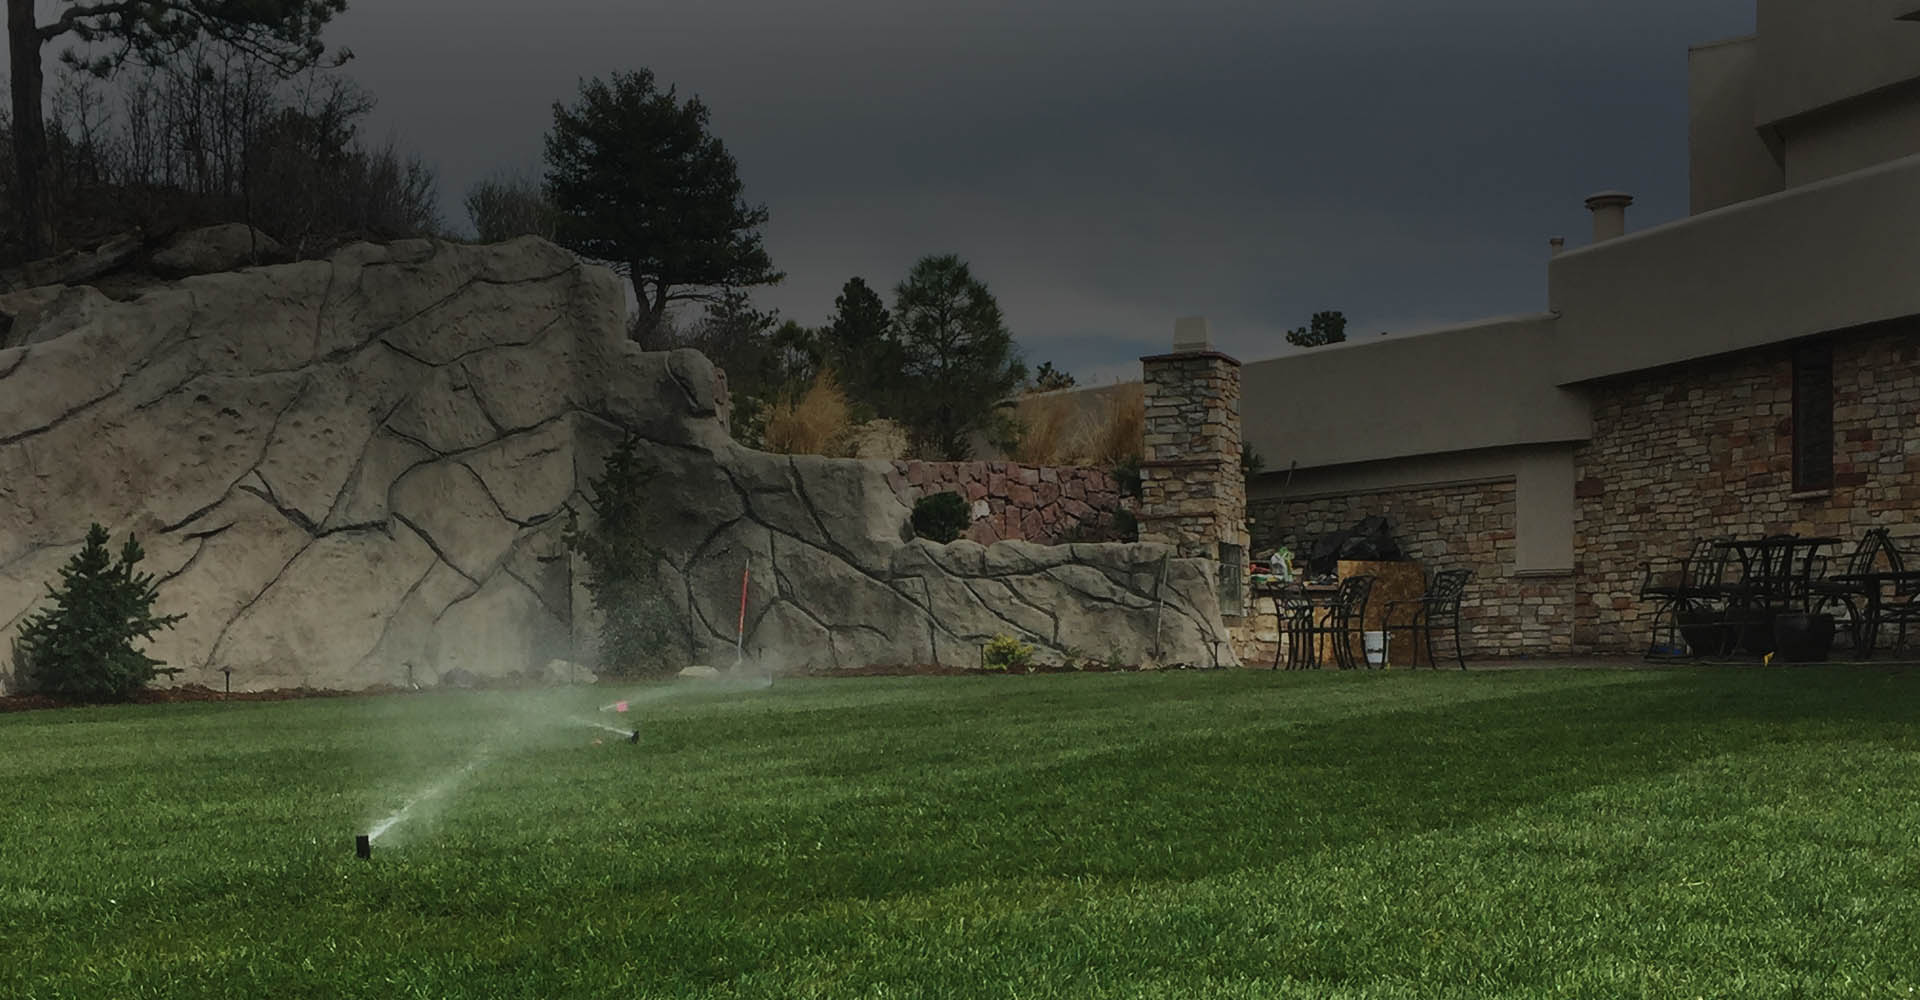 Sprinkler System Front Yard Signature Landscape Inc Services landscaping services Denver Littleton Co